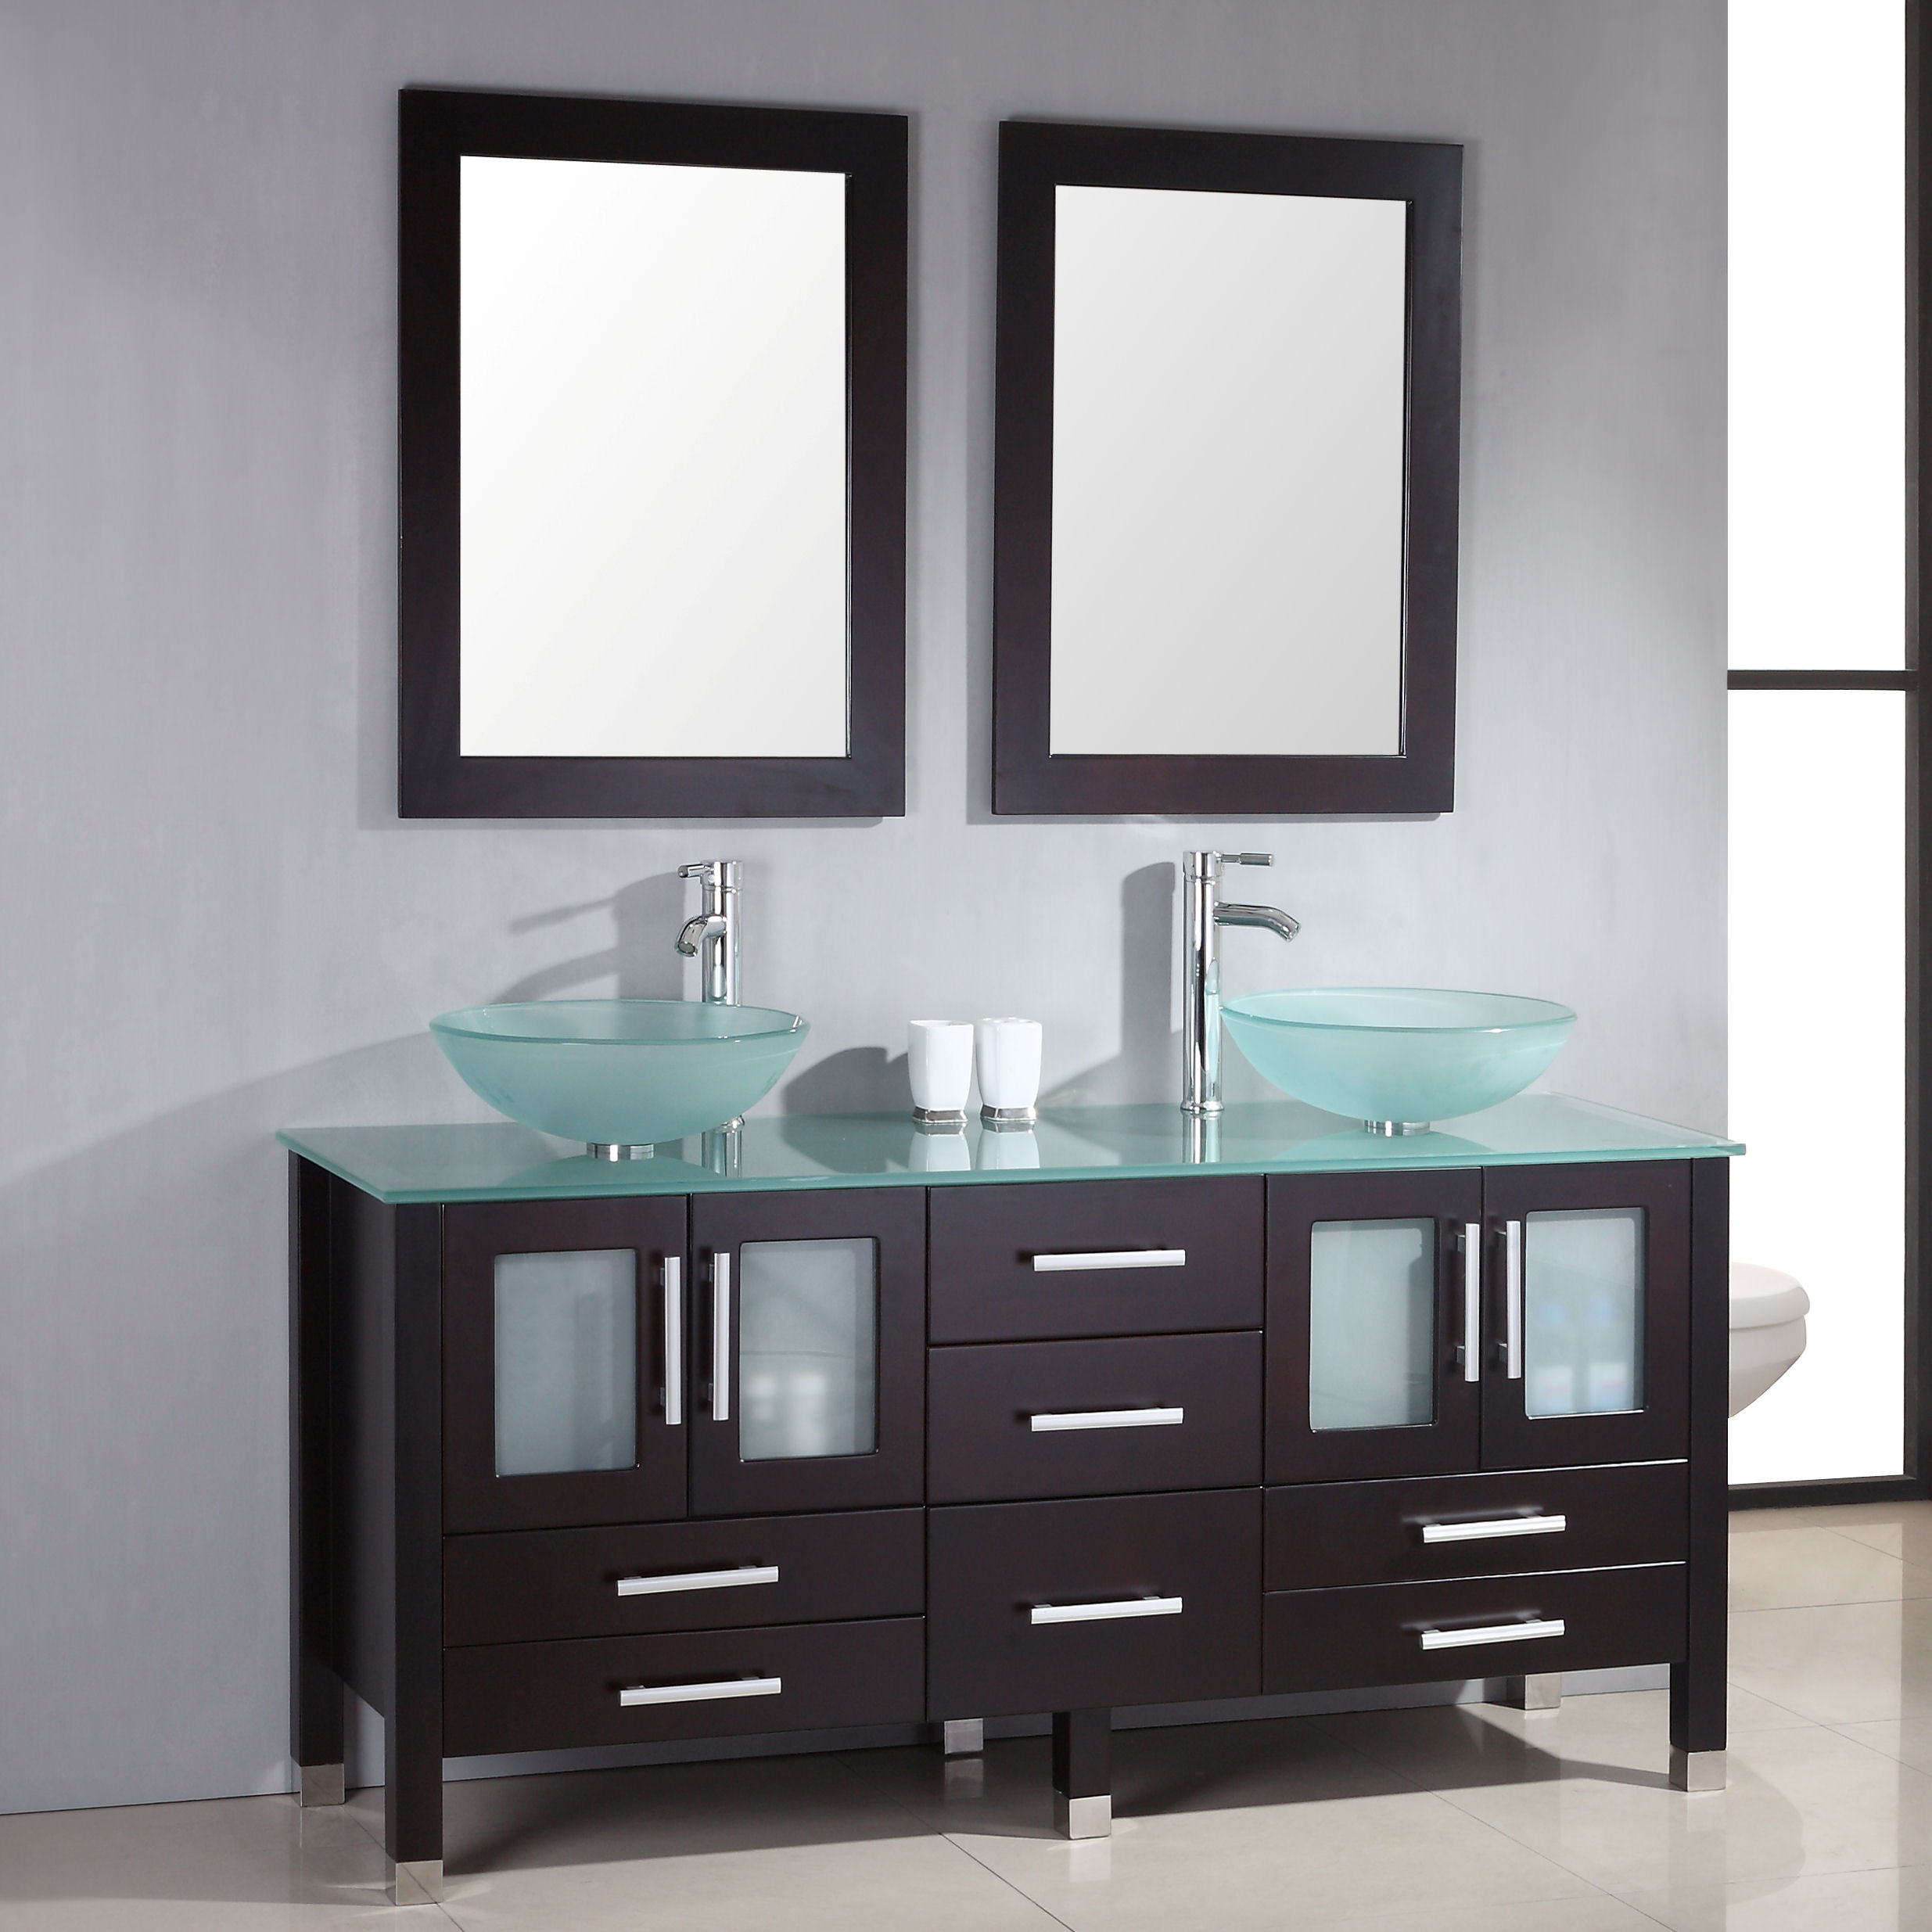 """71"""" Solid Wood & Glass Double Vessel Sink Vanity Set with Polished Chrome Faucets"""